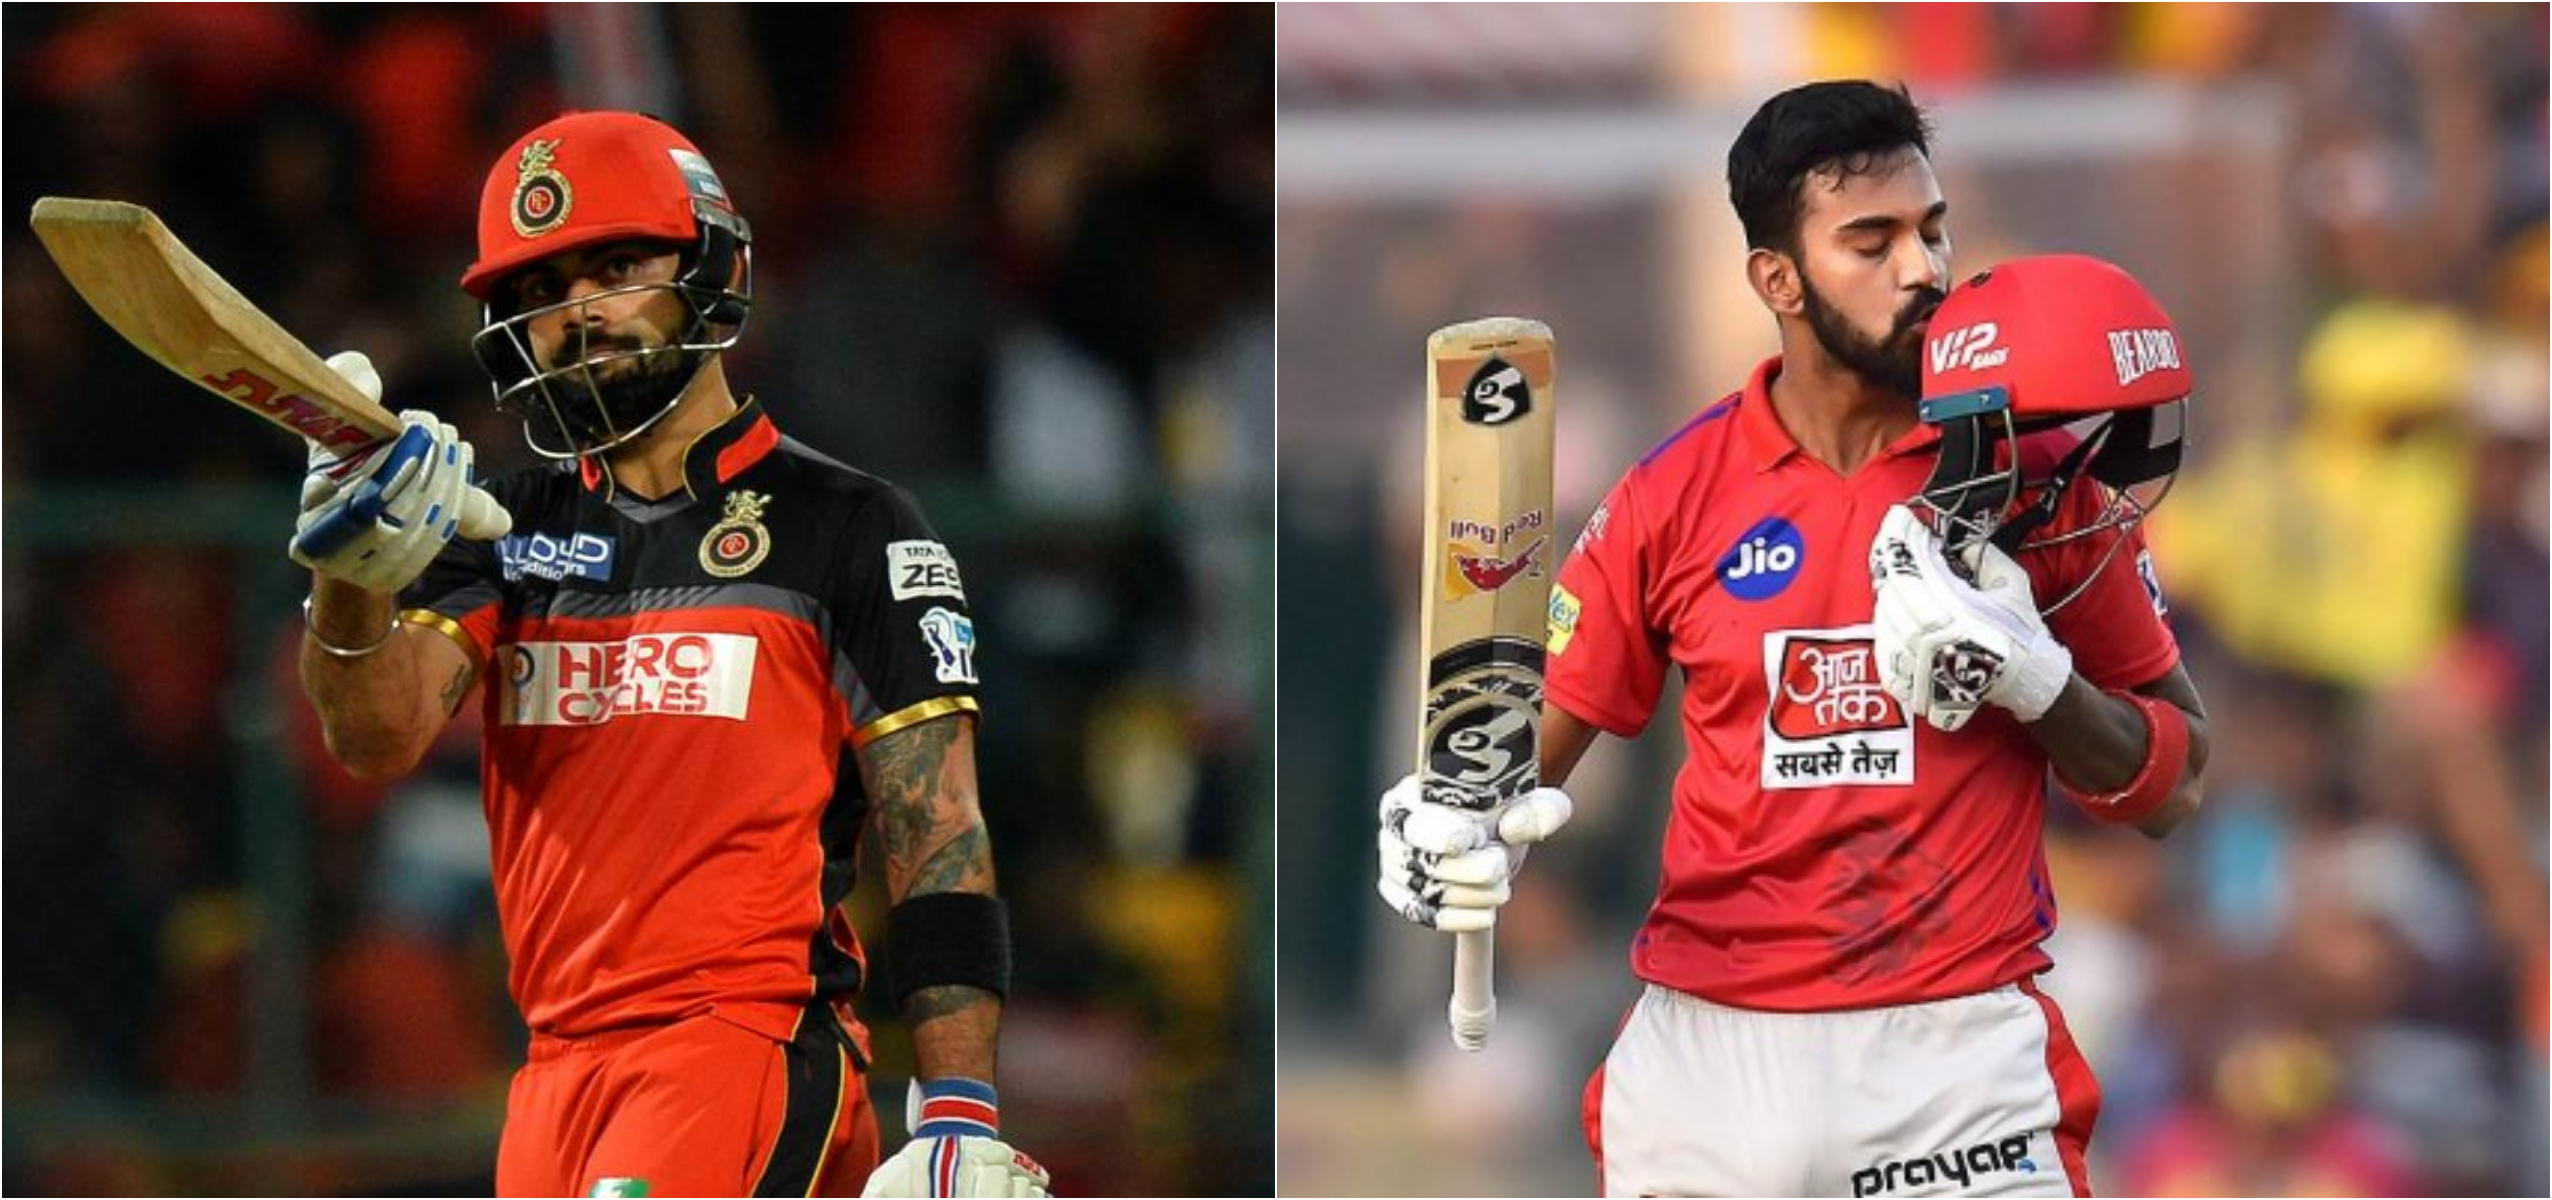 RCB and KXIP will be playing their second game